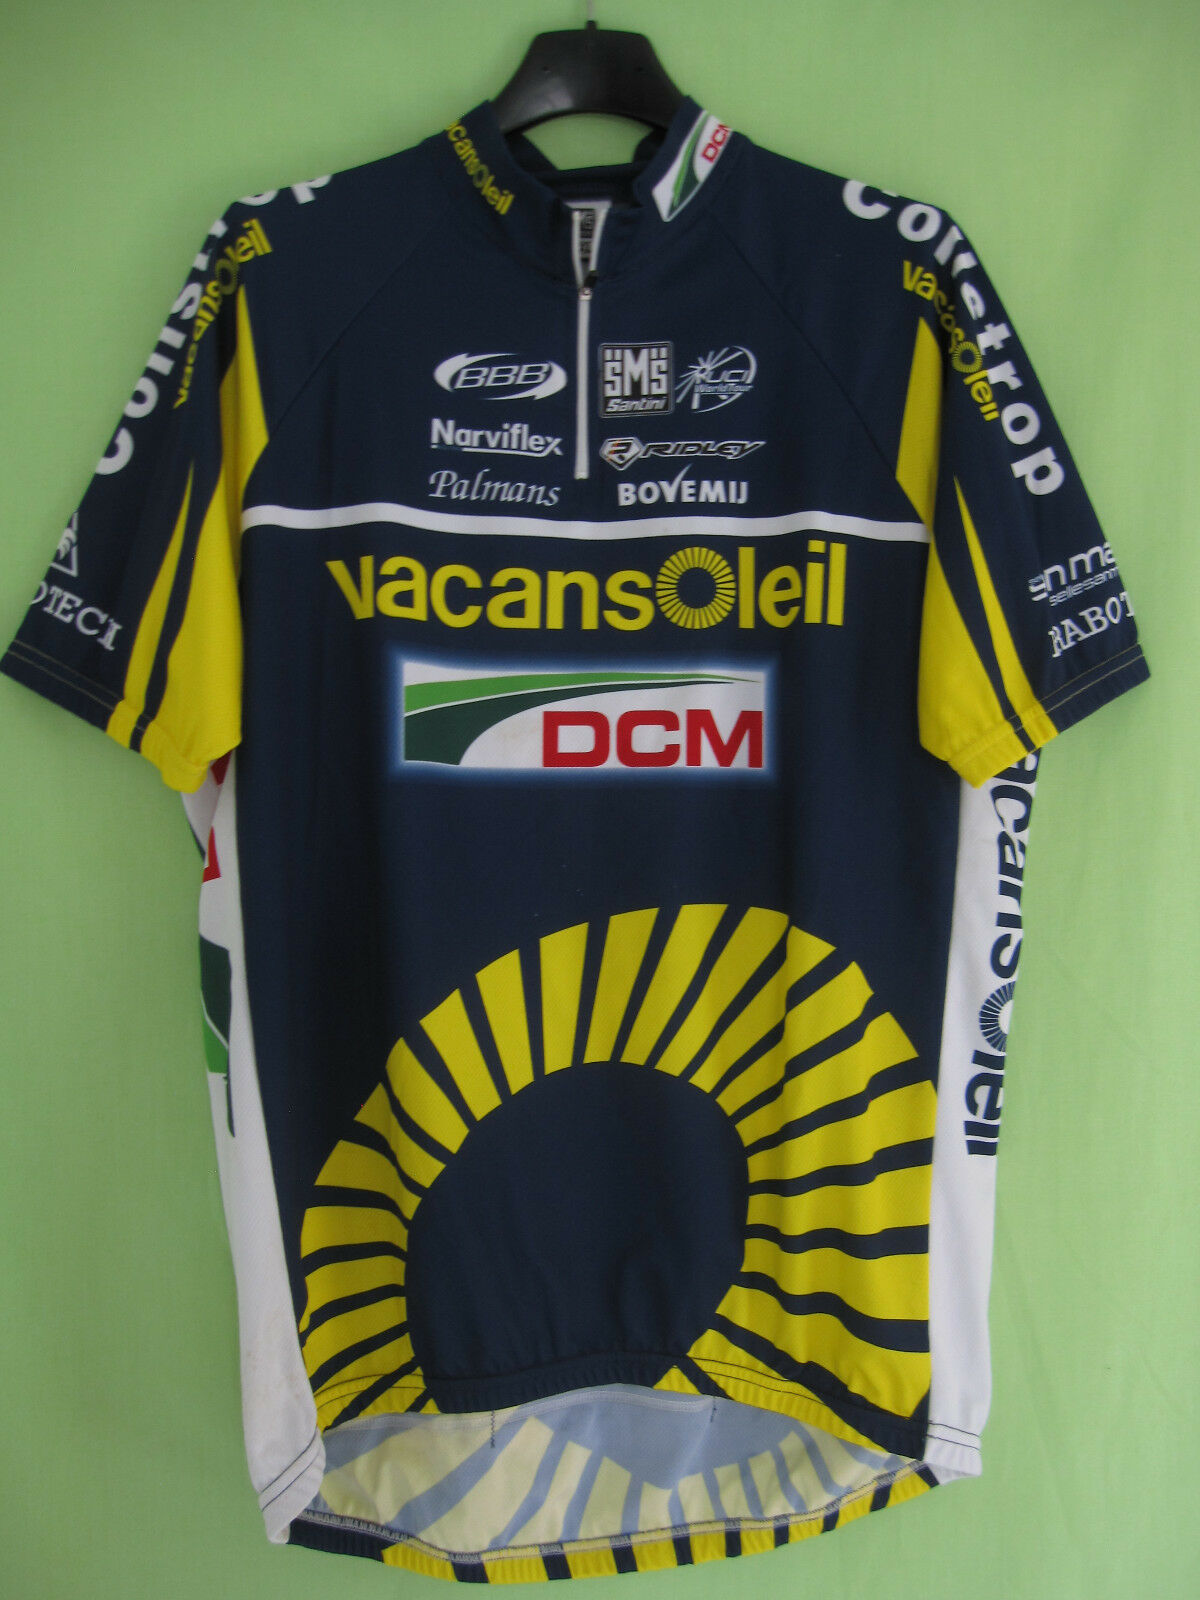 Maillot cycliste Vacansoleil DCM Pro Cycling Team 2011 Cycling Jersey - XXXL